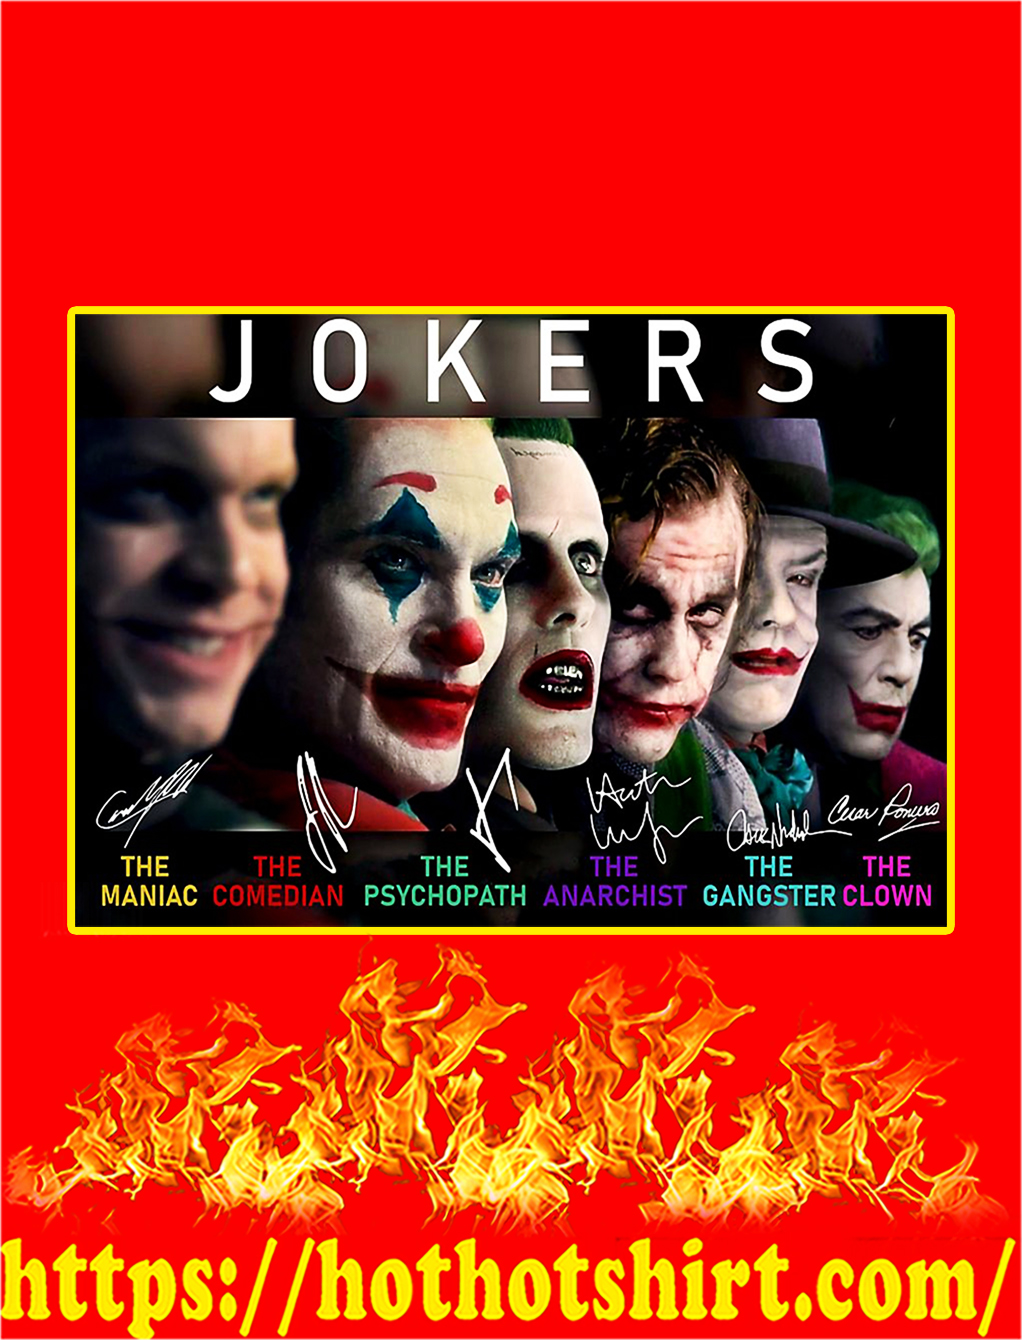 Jokers The Maniac The Comedian Poster - A4